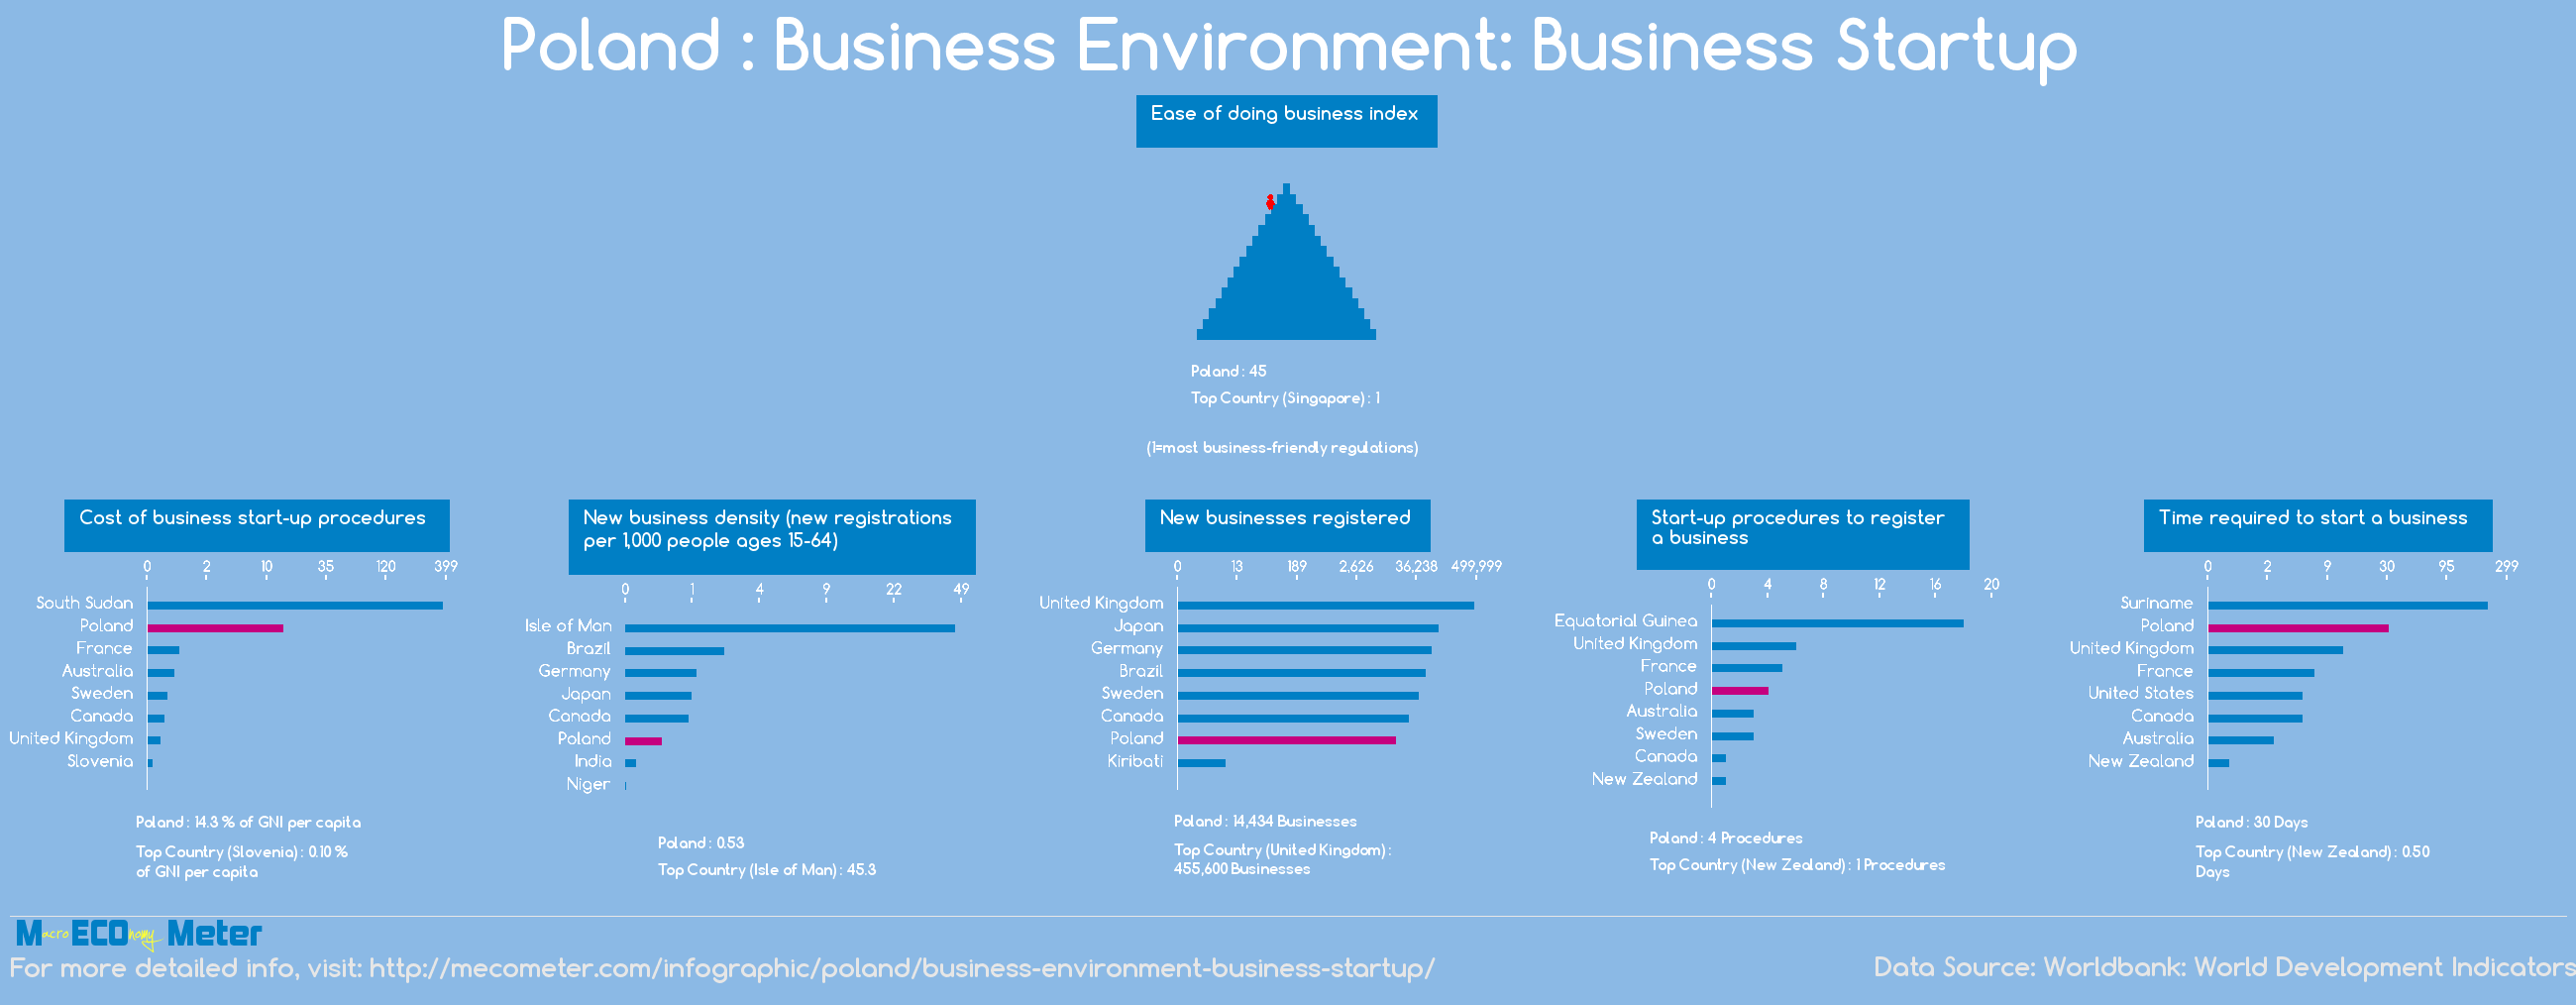 Poland : Business Environment: Business Startup